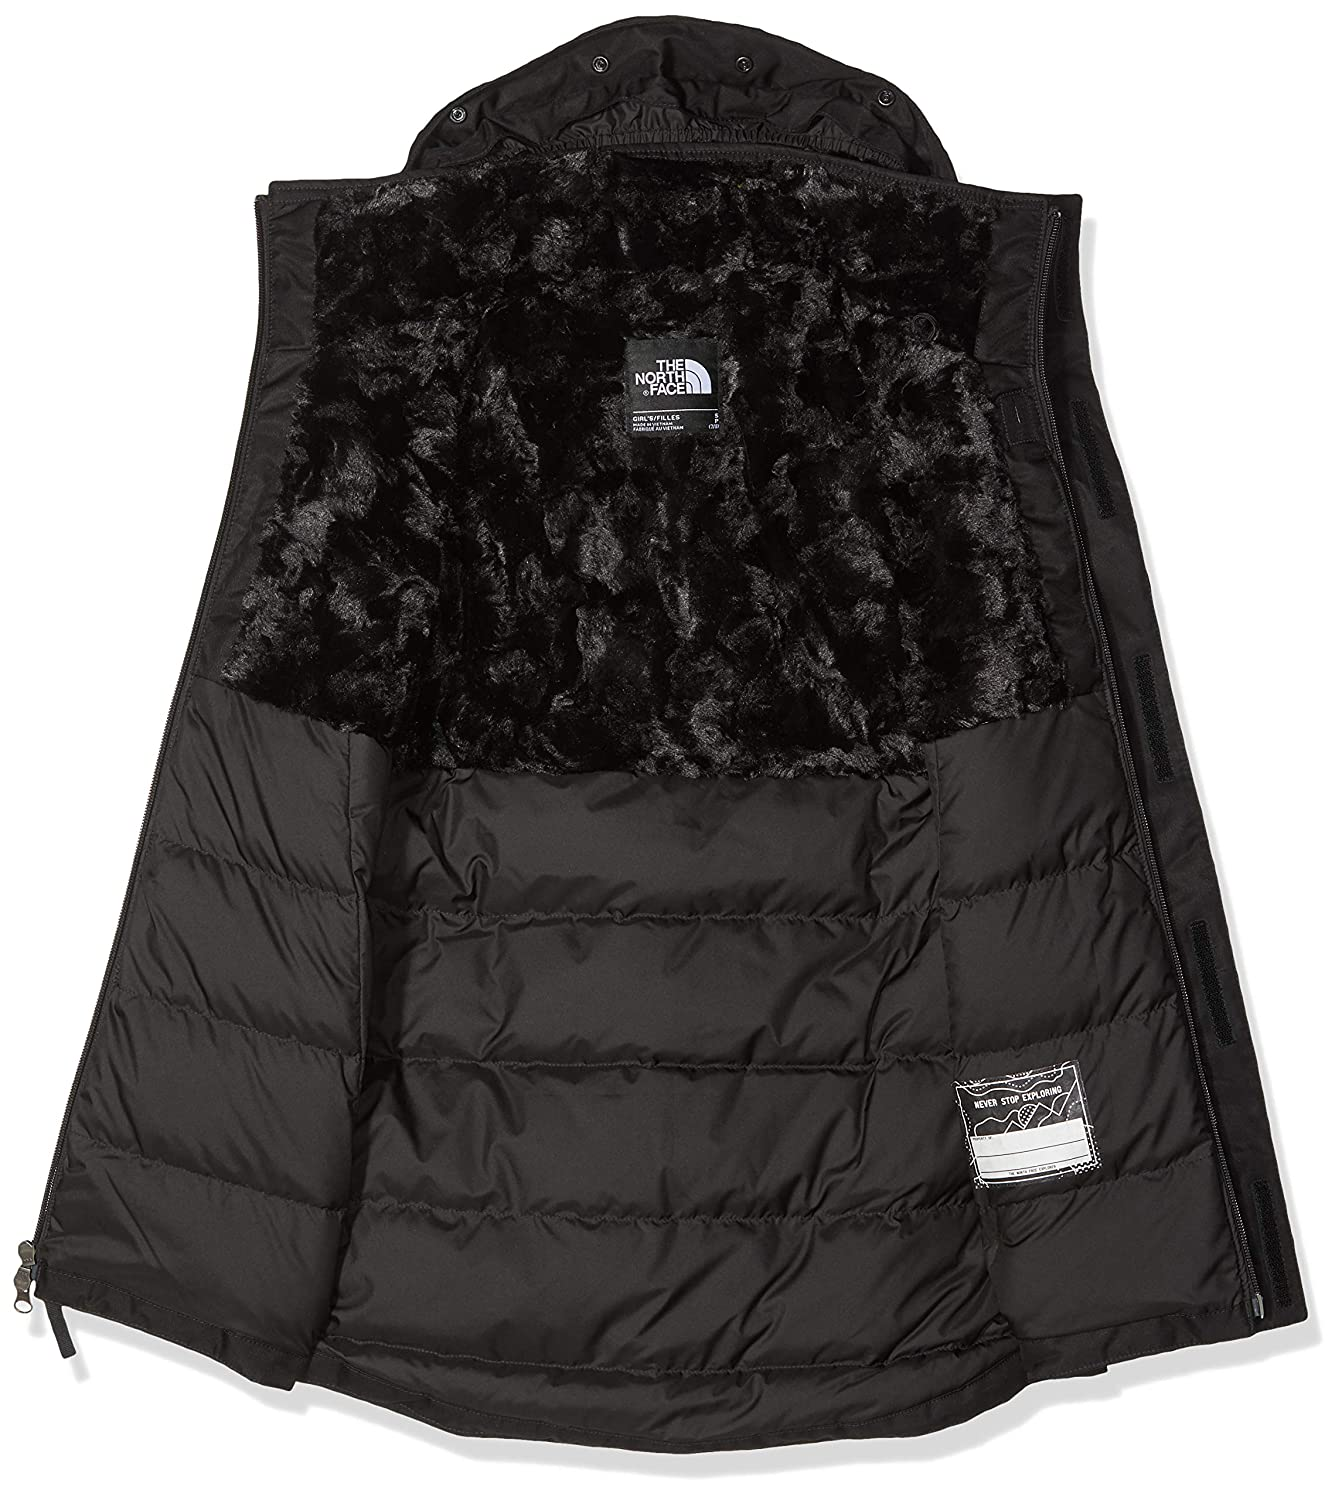 b1b8ef651 The North Face Kids Girl's Arctic Swirl Down Jacket (Little Kids/Big Kids)